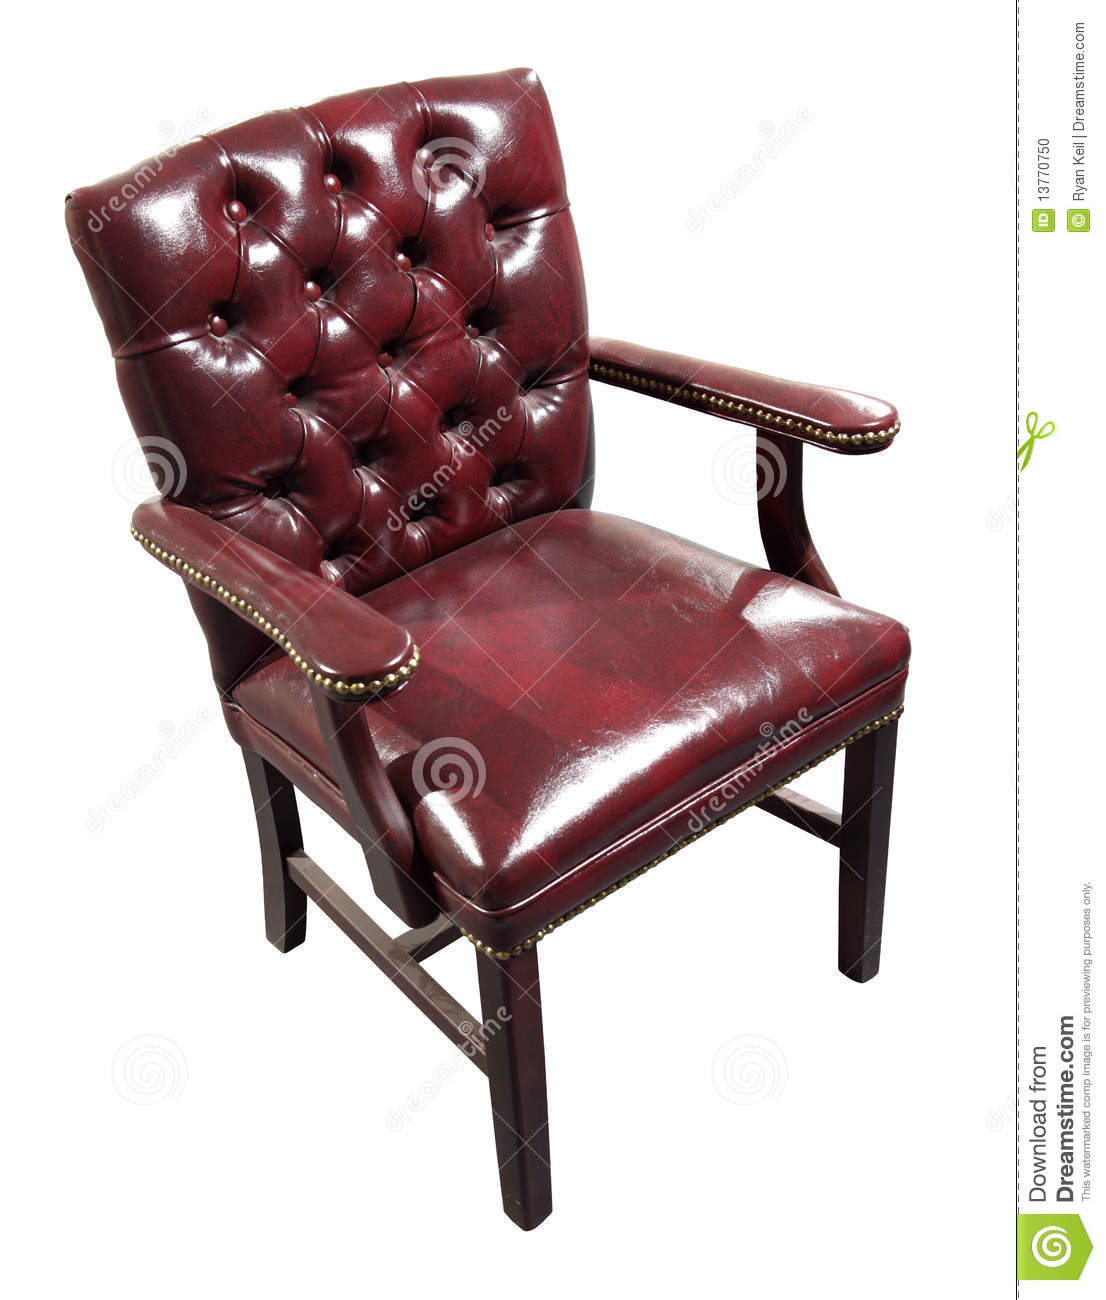 red leather desk chair barcelona style uk stock photo image 13770750